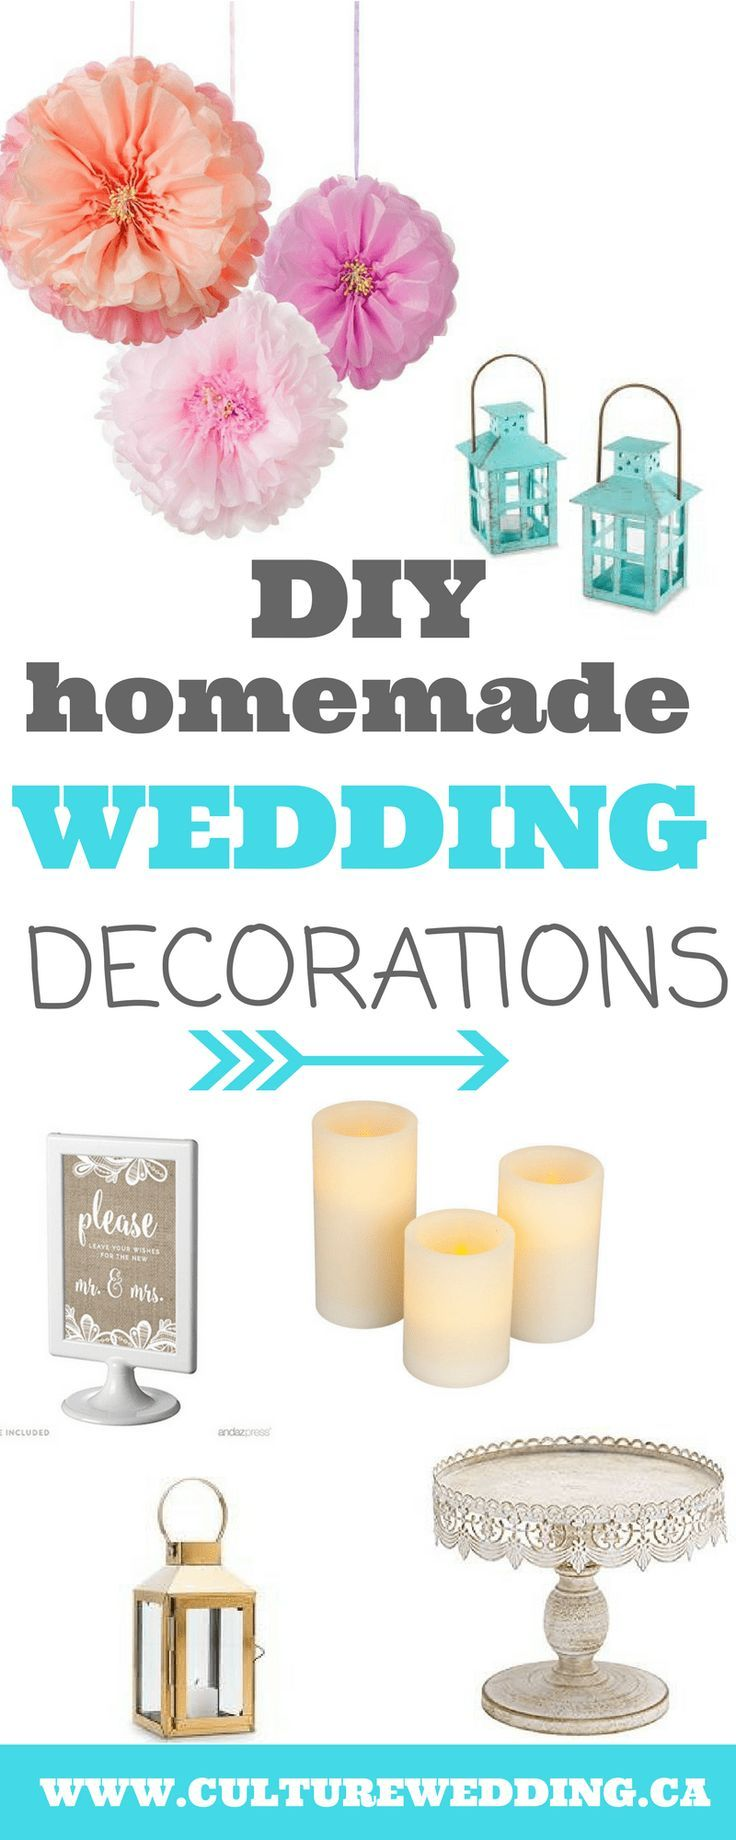 diy homemade wedding decorations for couples on a budget